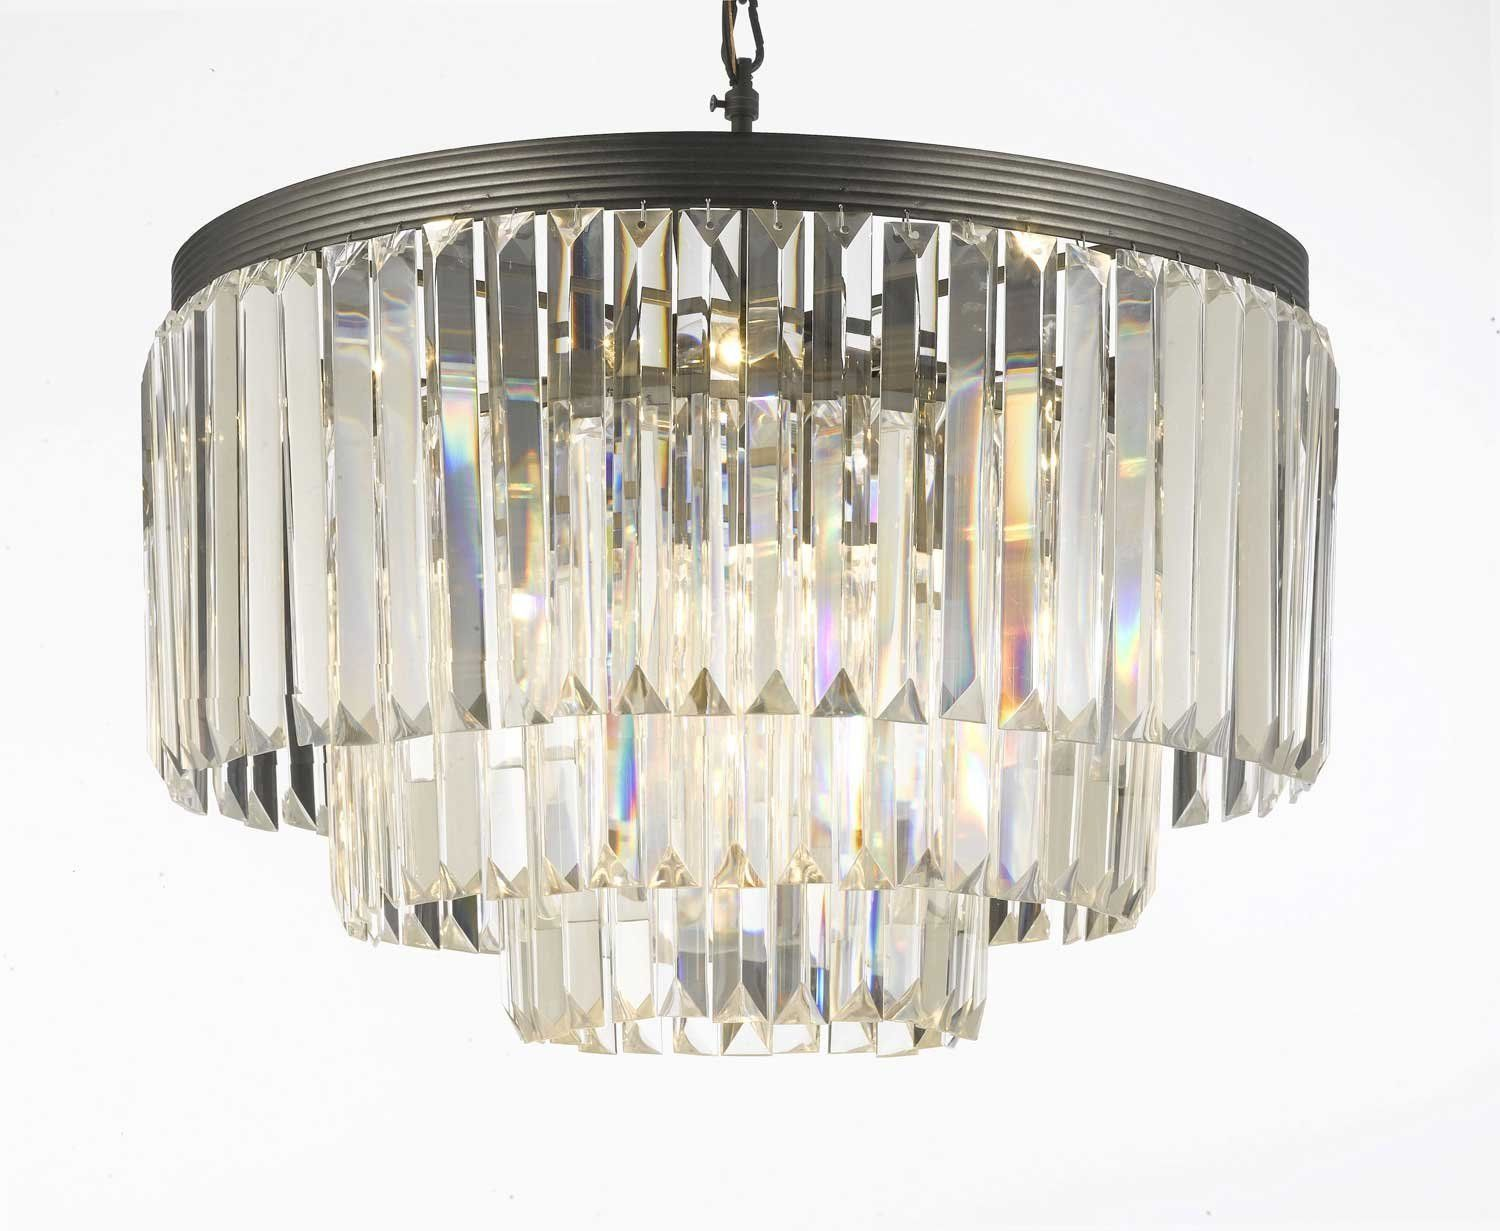 Amazon odeon crystal glass fringe 3 tier chandelier chandeliers amazon odeon crystal glass fringe 3 tier chandelier chandeliers lighting amazon aloadofball Gallery